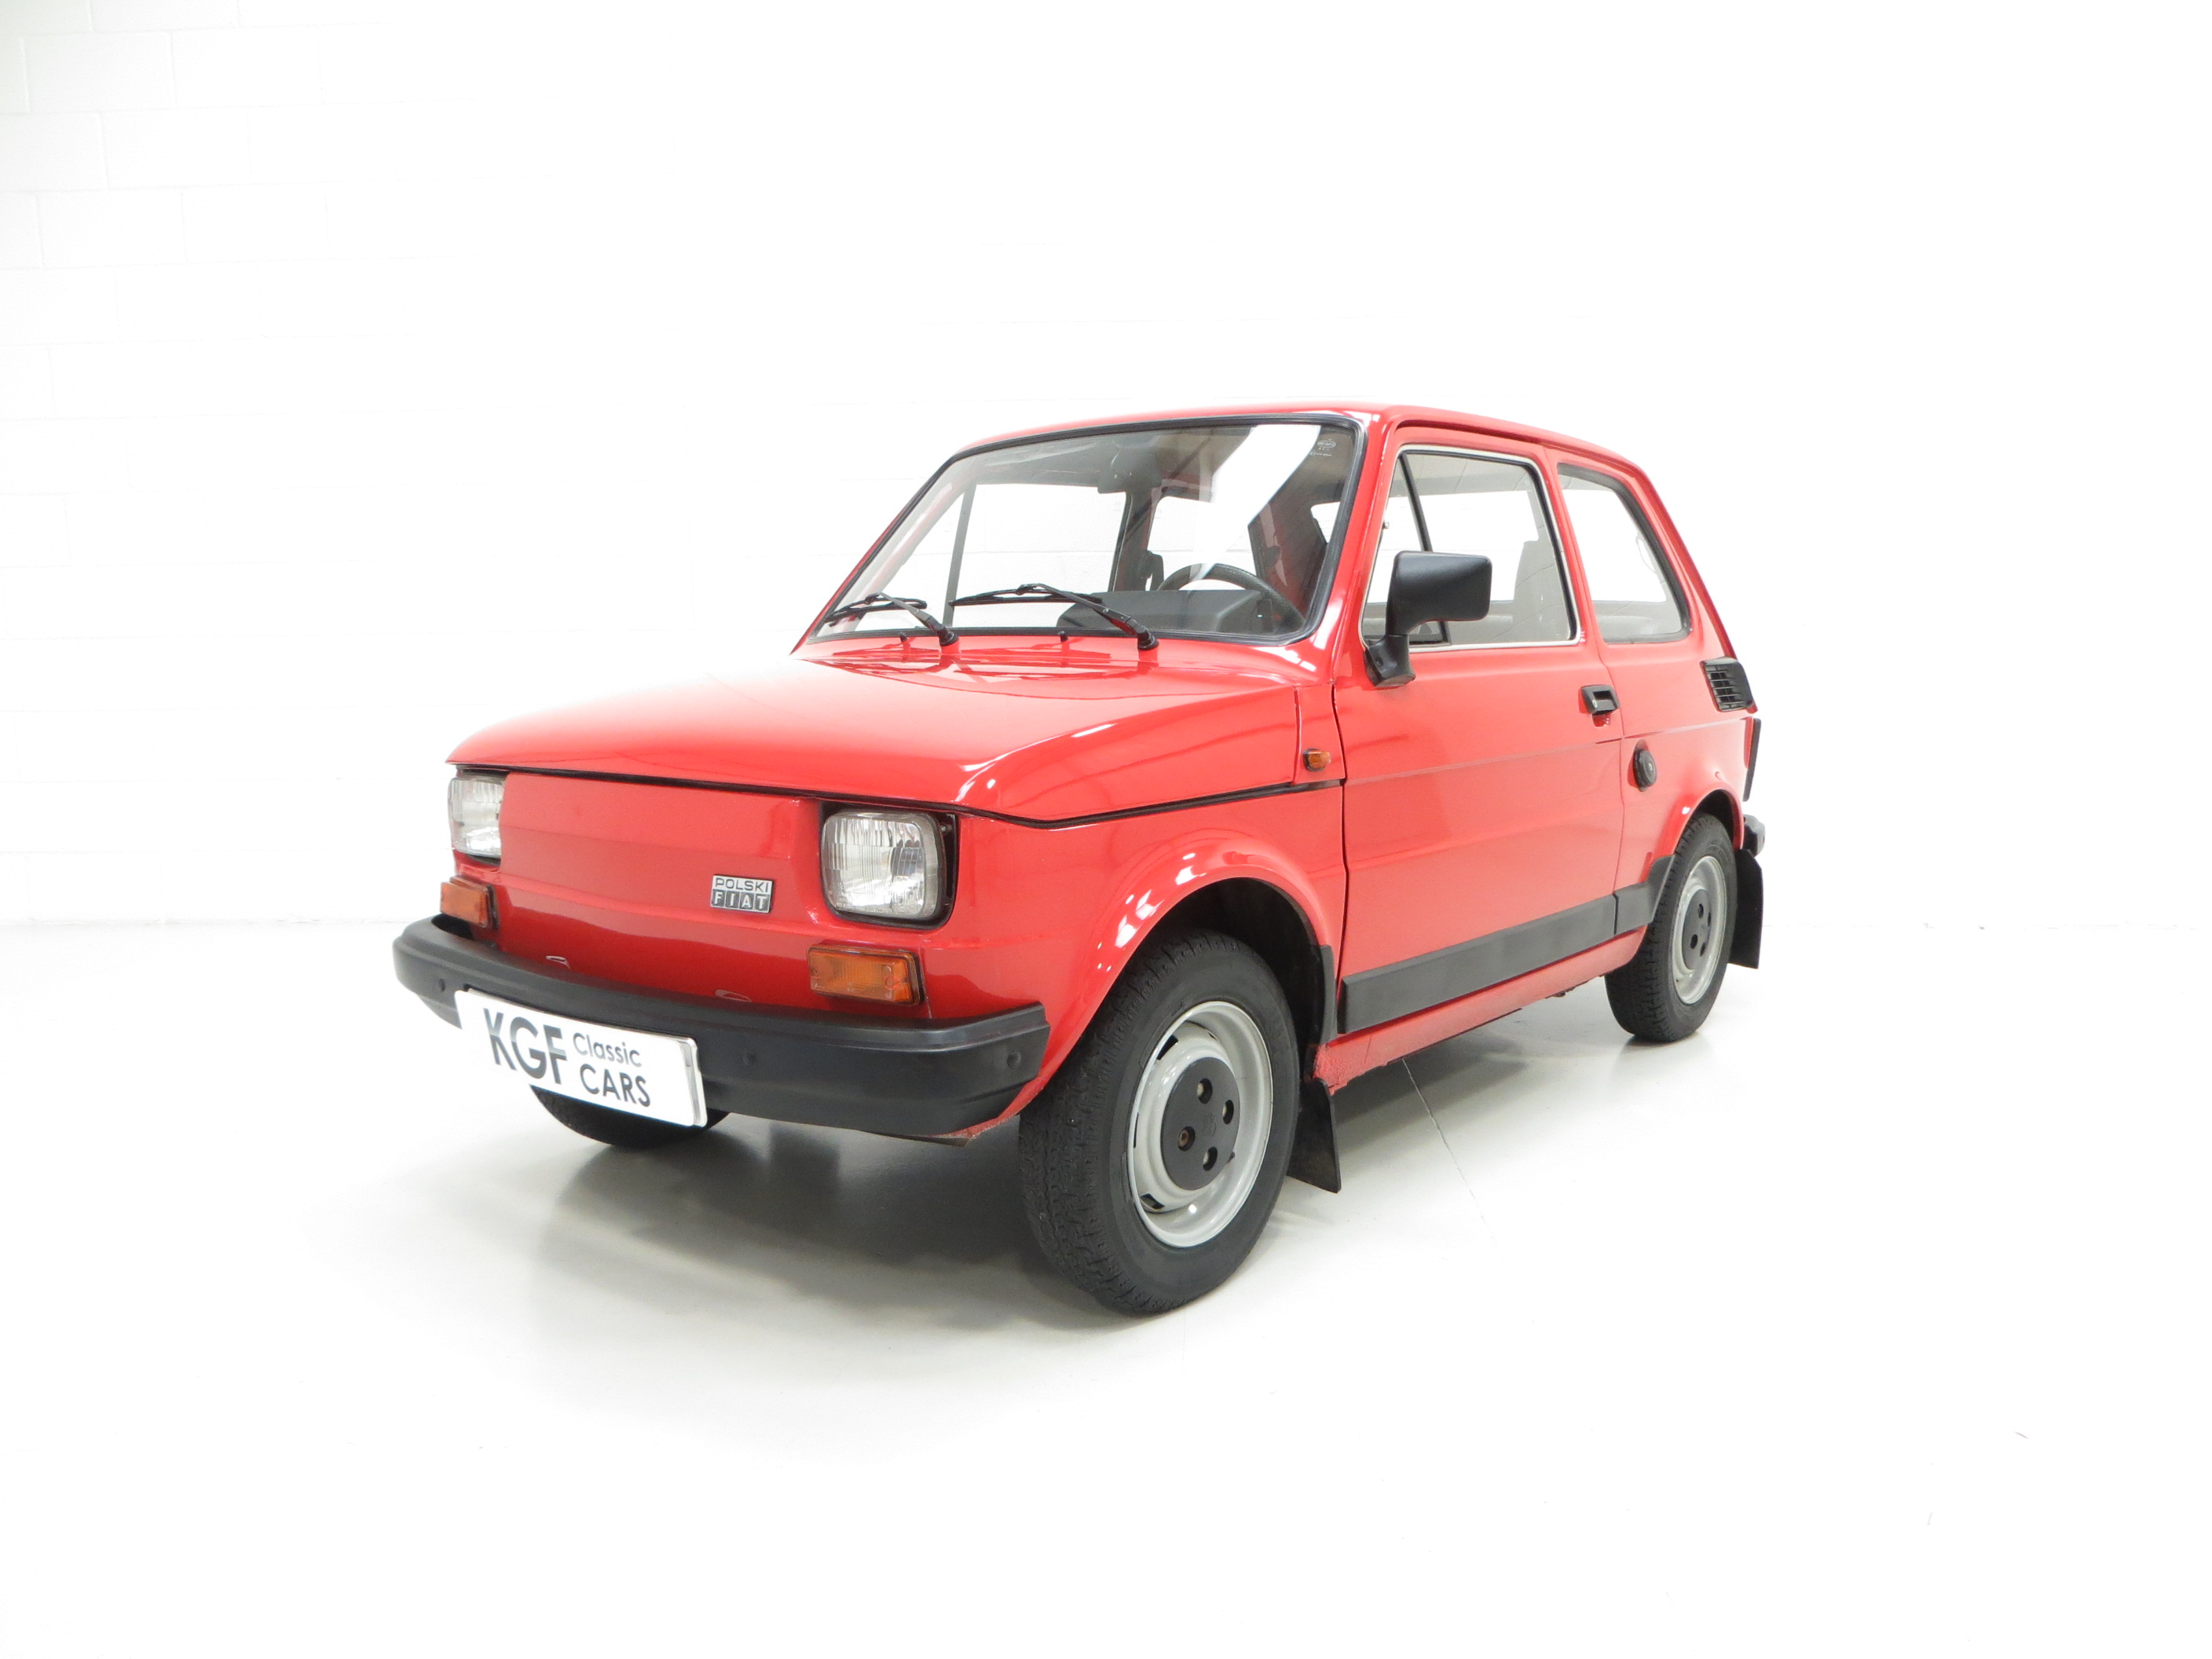 an original polski fiat 126p owned by jonny smith sold pe1 retro rides. Black Bedroom Furniture Sets. Home Design Ideas